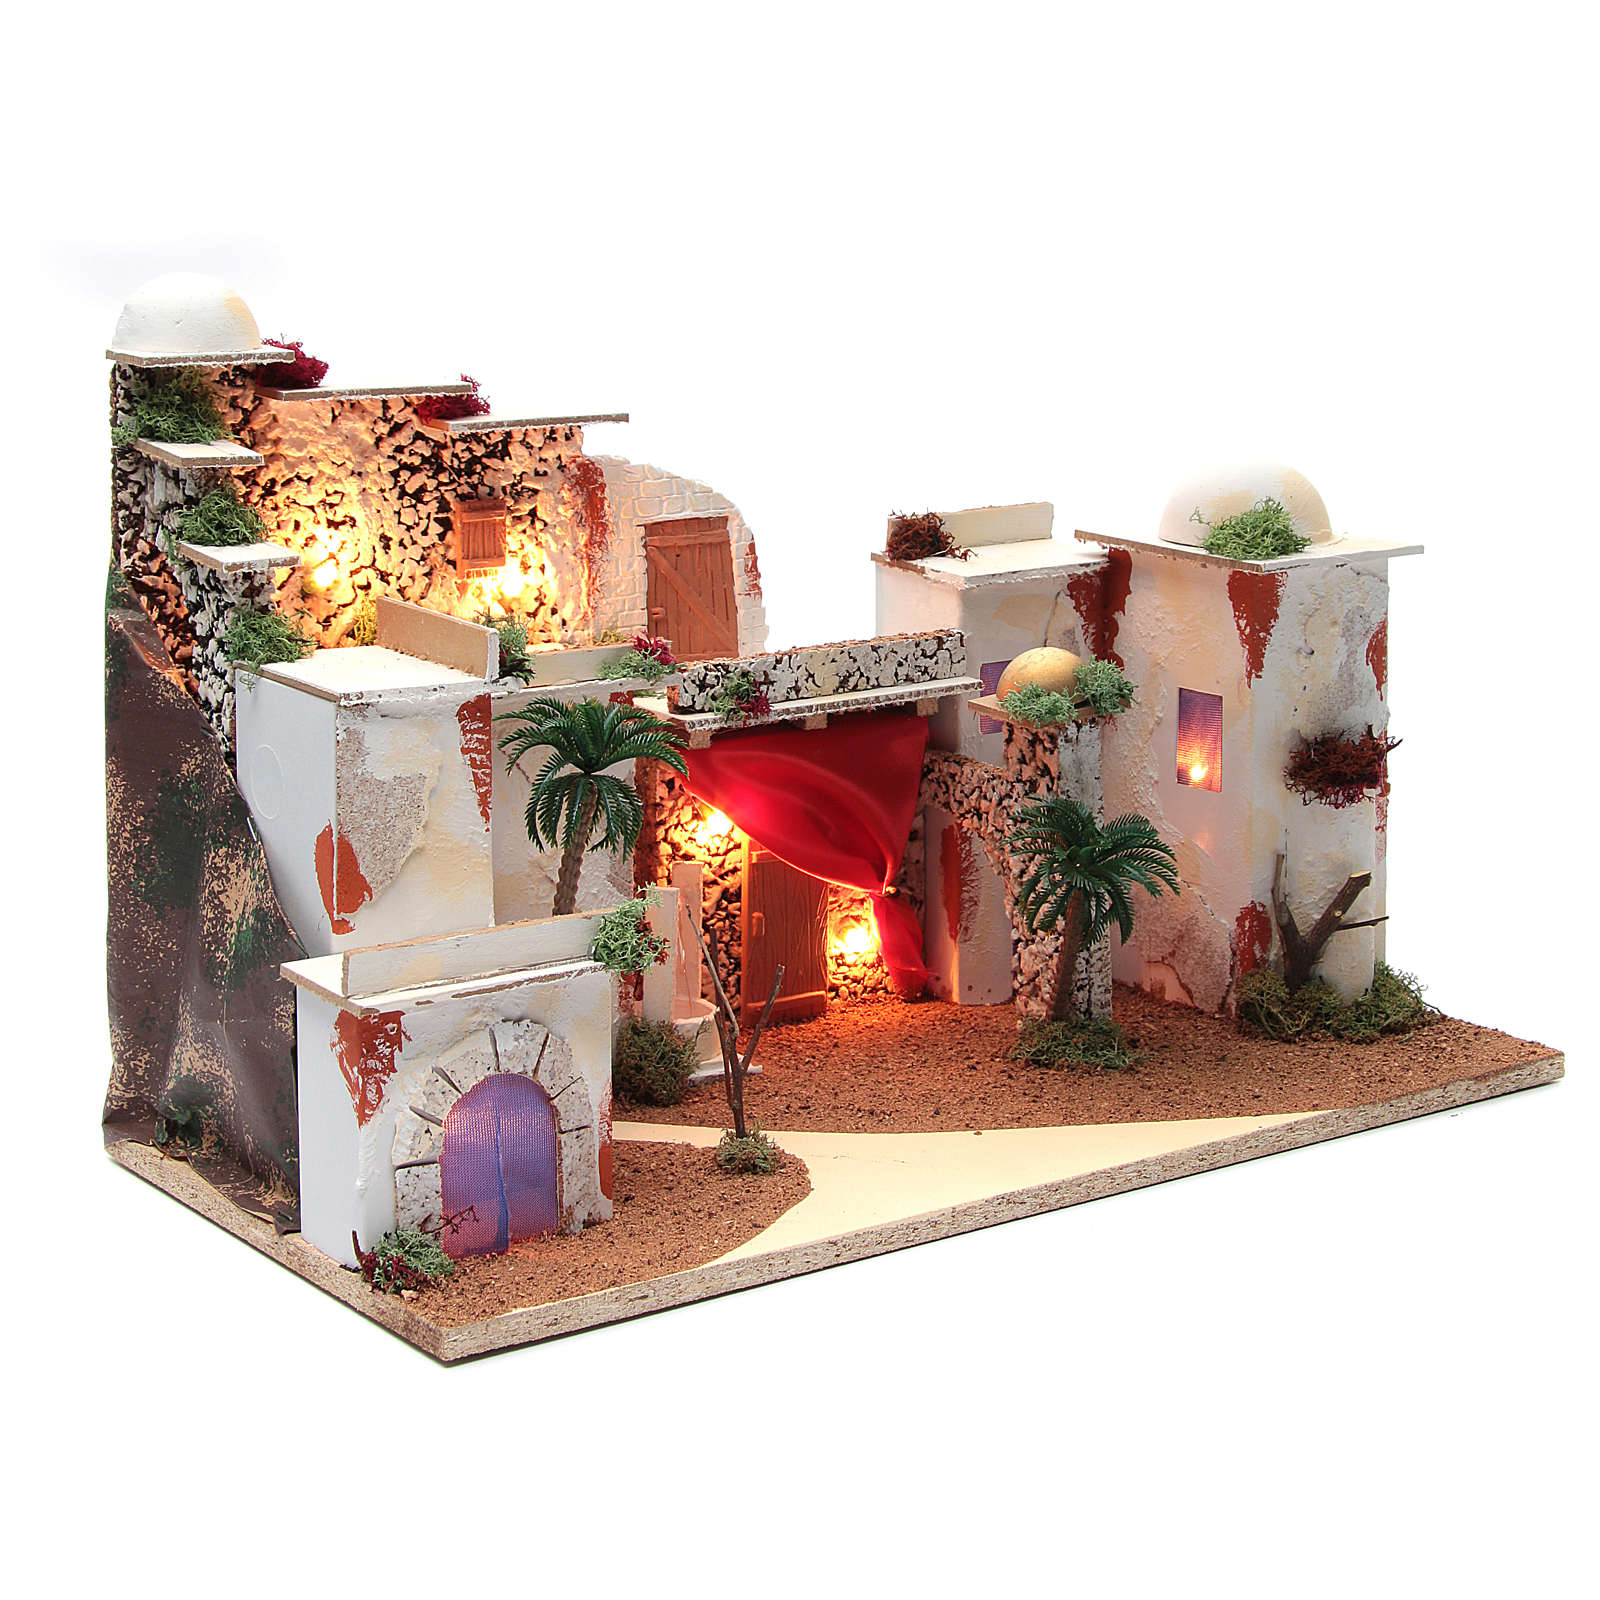 Arabian landscape for nativity scene with lights 30x50x25 cm 4